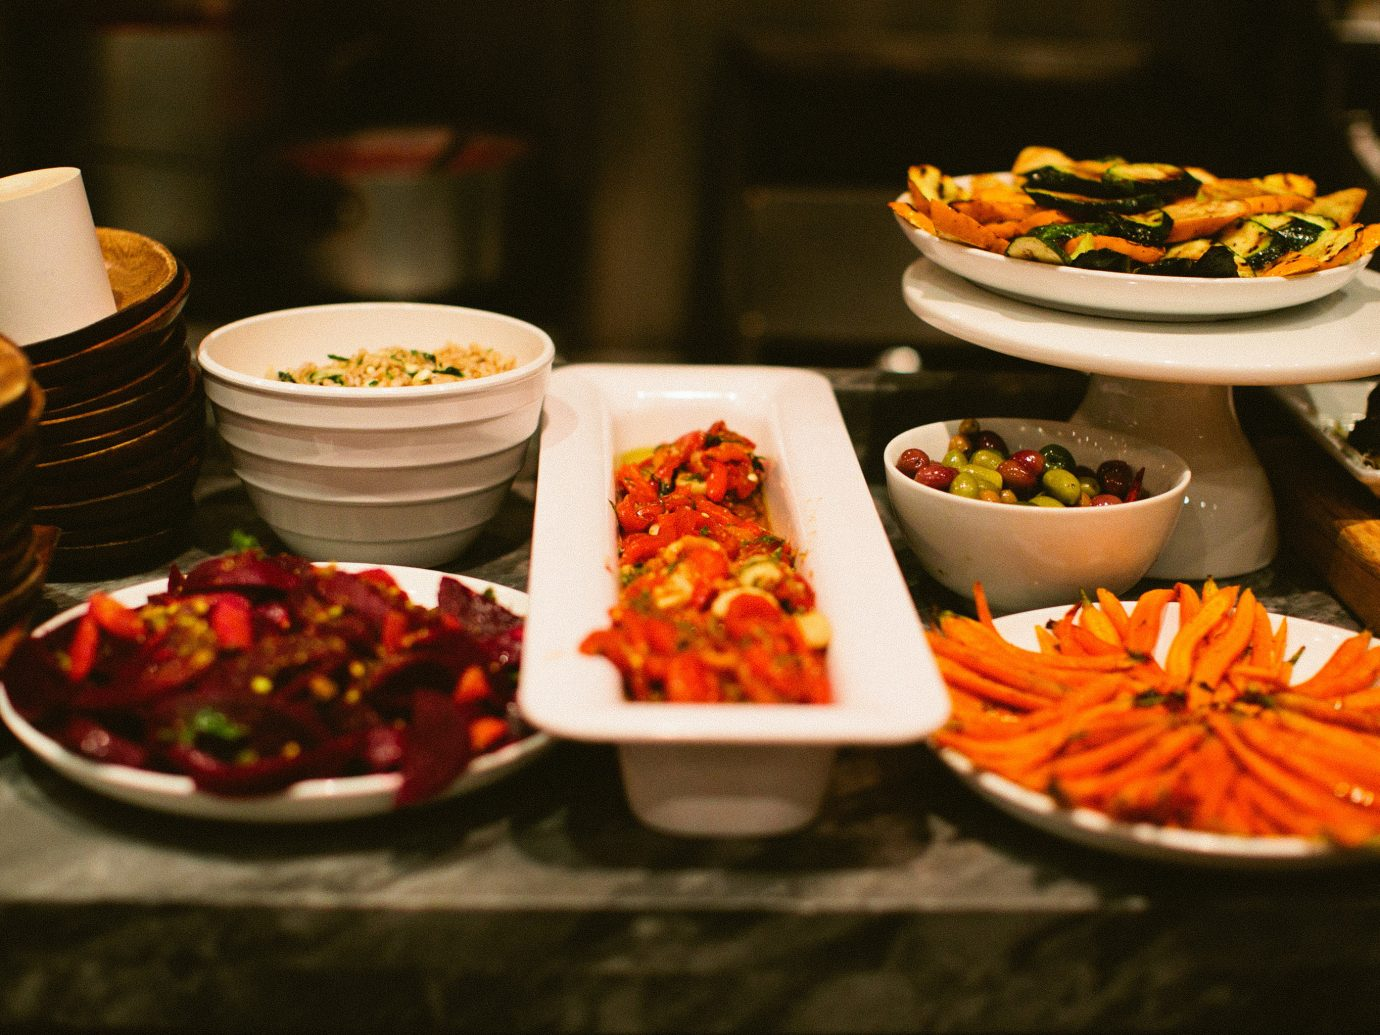 Food + Drink food plate meal indoor bowl dish buffet cuisine supper brunch sense dinner asian food lunch different several sliced